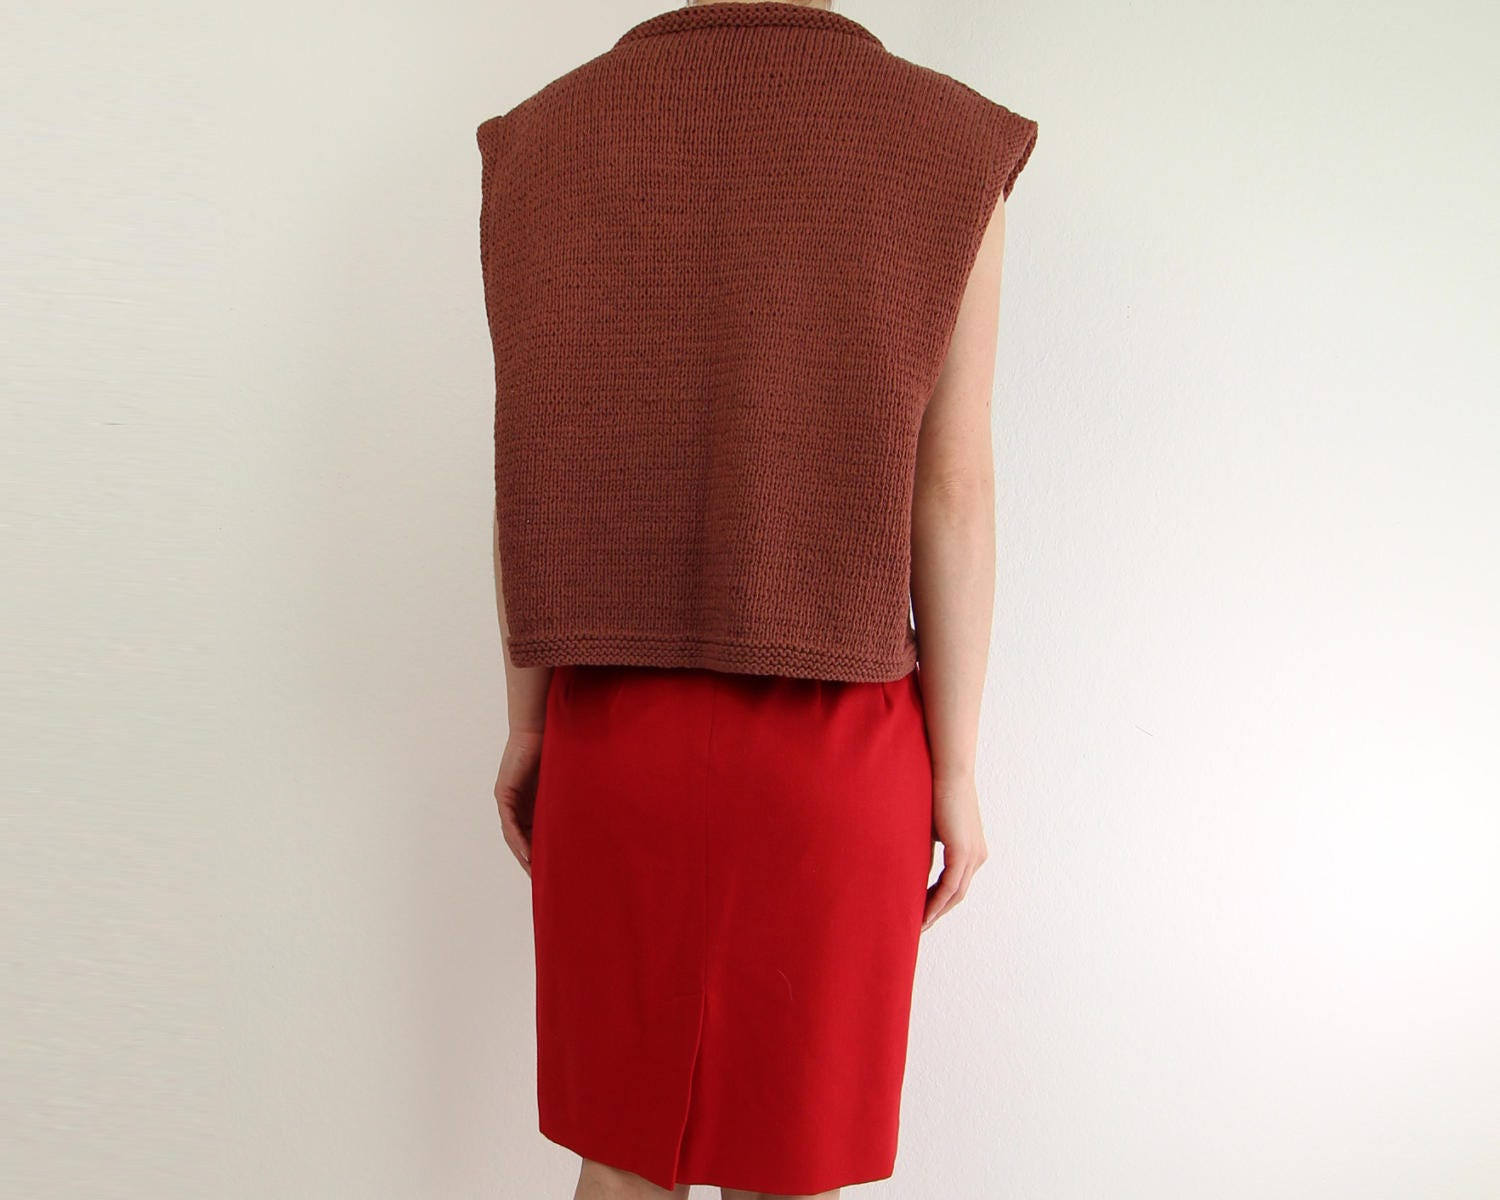 9b6adaf150781 VINTAGE Cropped Sweater Sleeveless Knit Top. gallery photo gallery photo  gallery photo gallery photo gallery photo